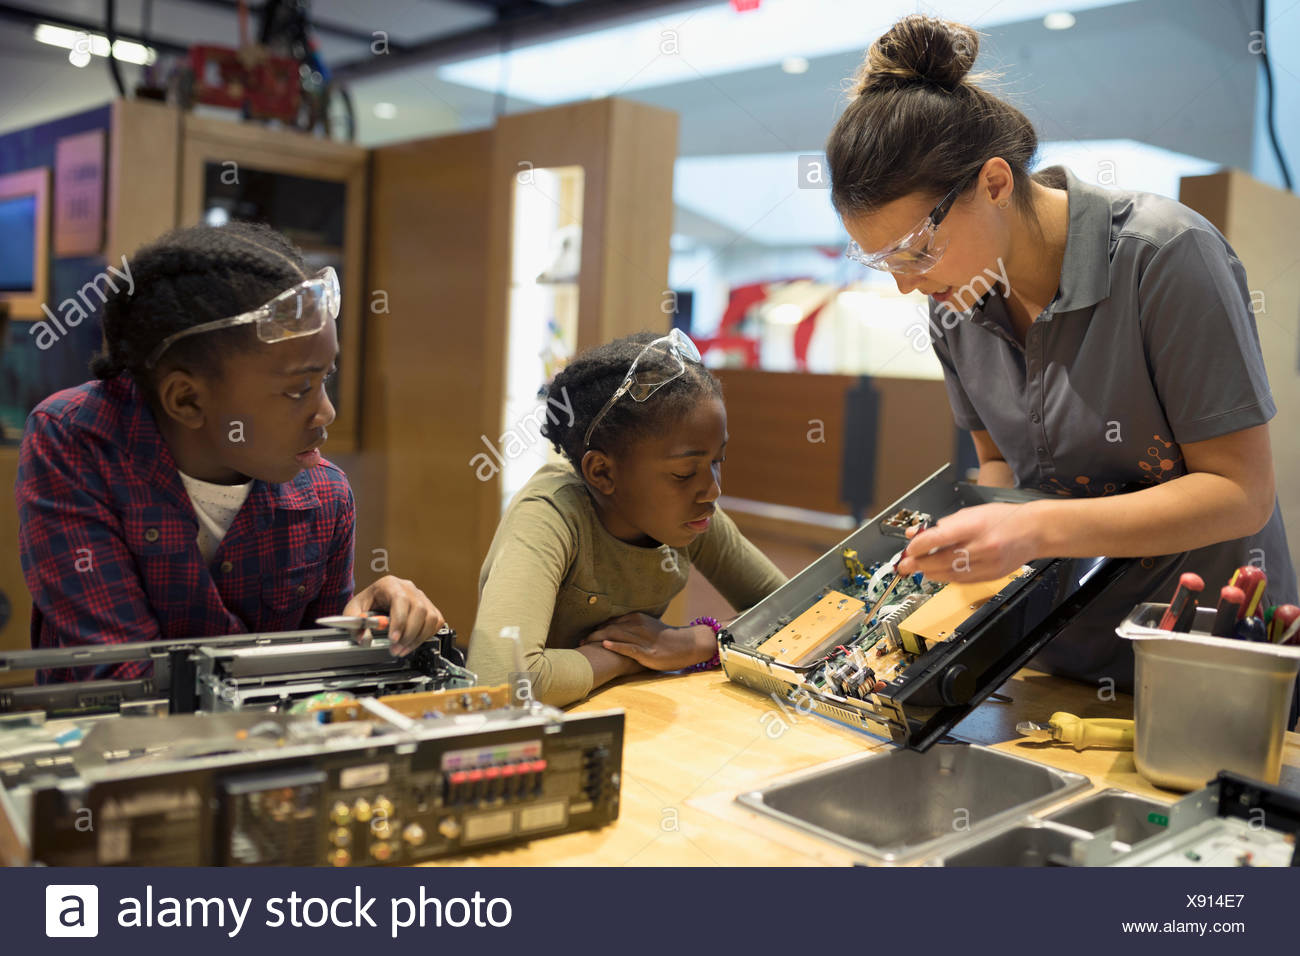 Scientist teaching twin sisters assembling electronics in science center - Stock Image